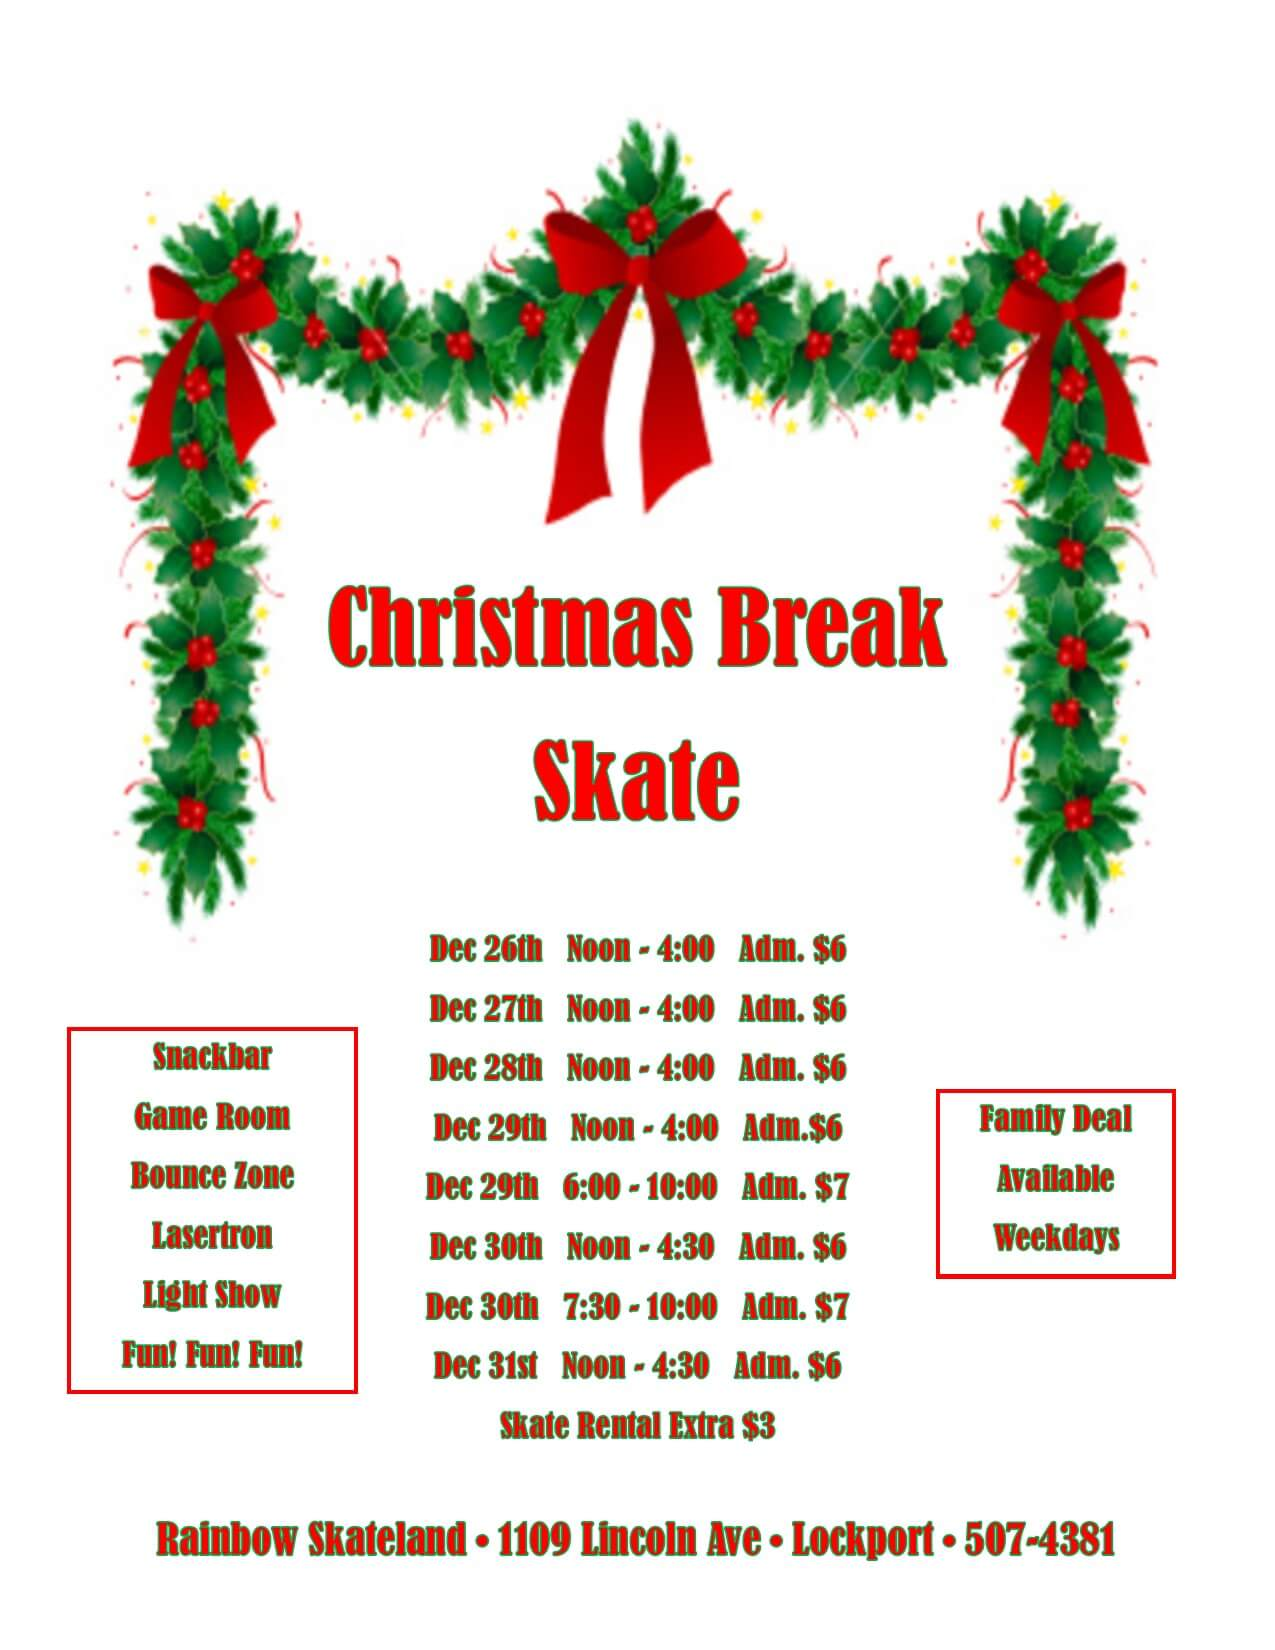 Christmas break skate